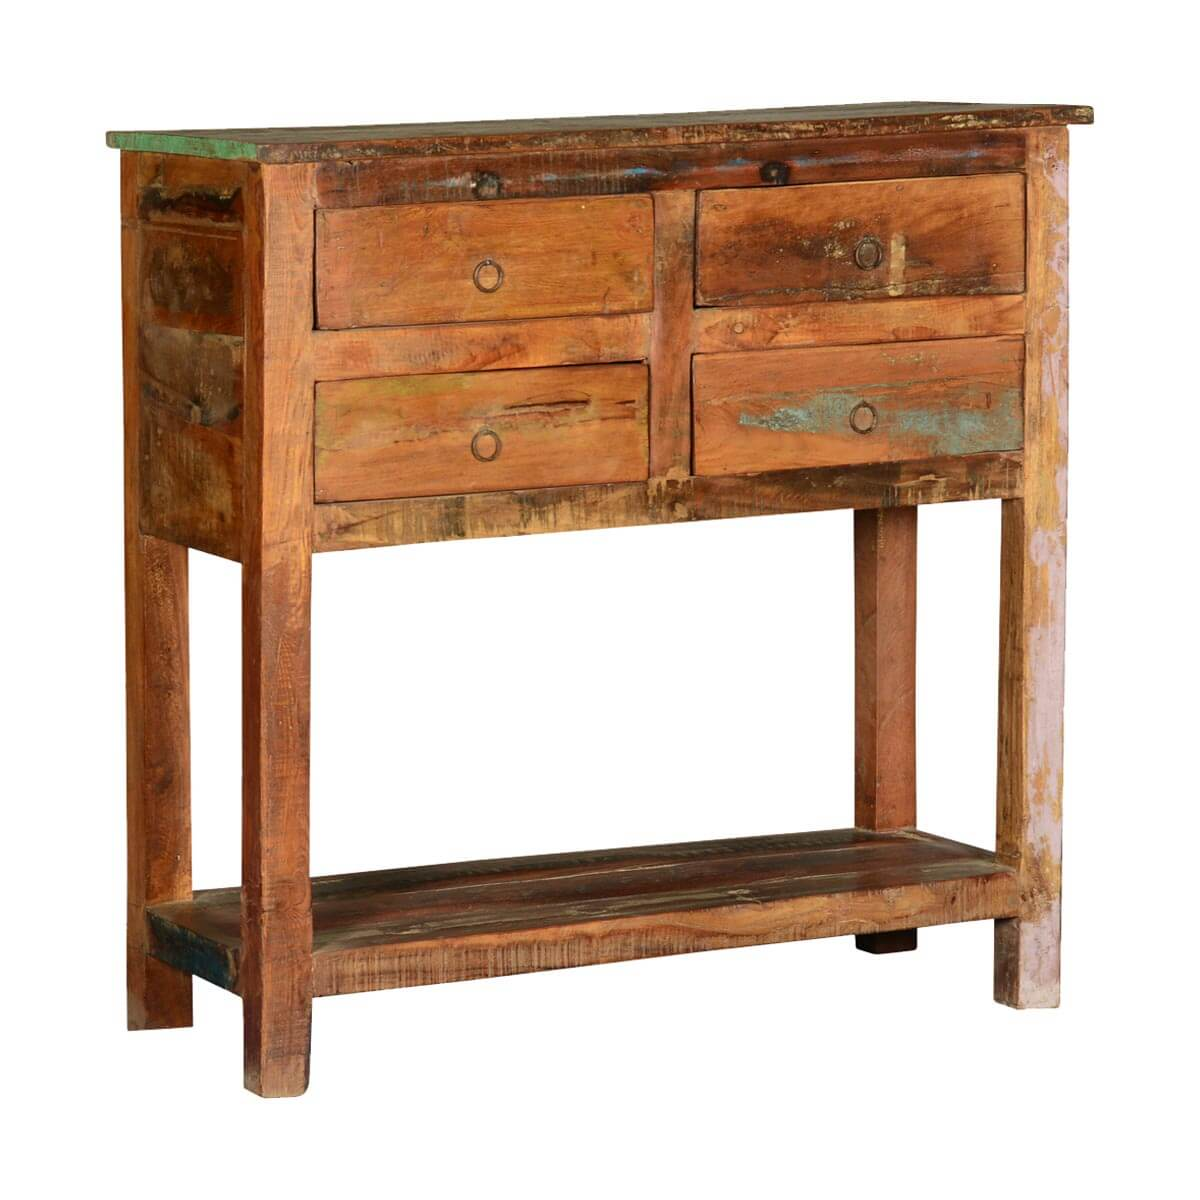 Marvelous photograph of Frontier Rustic Reclaimed Wood Hall Console Table w Drawers with #AE511D color and 1200x1200 pixels